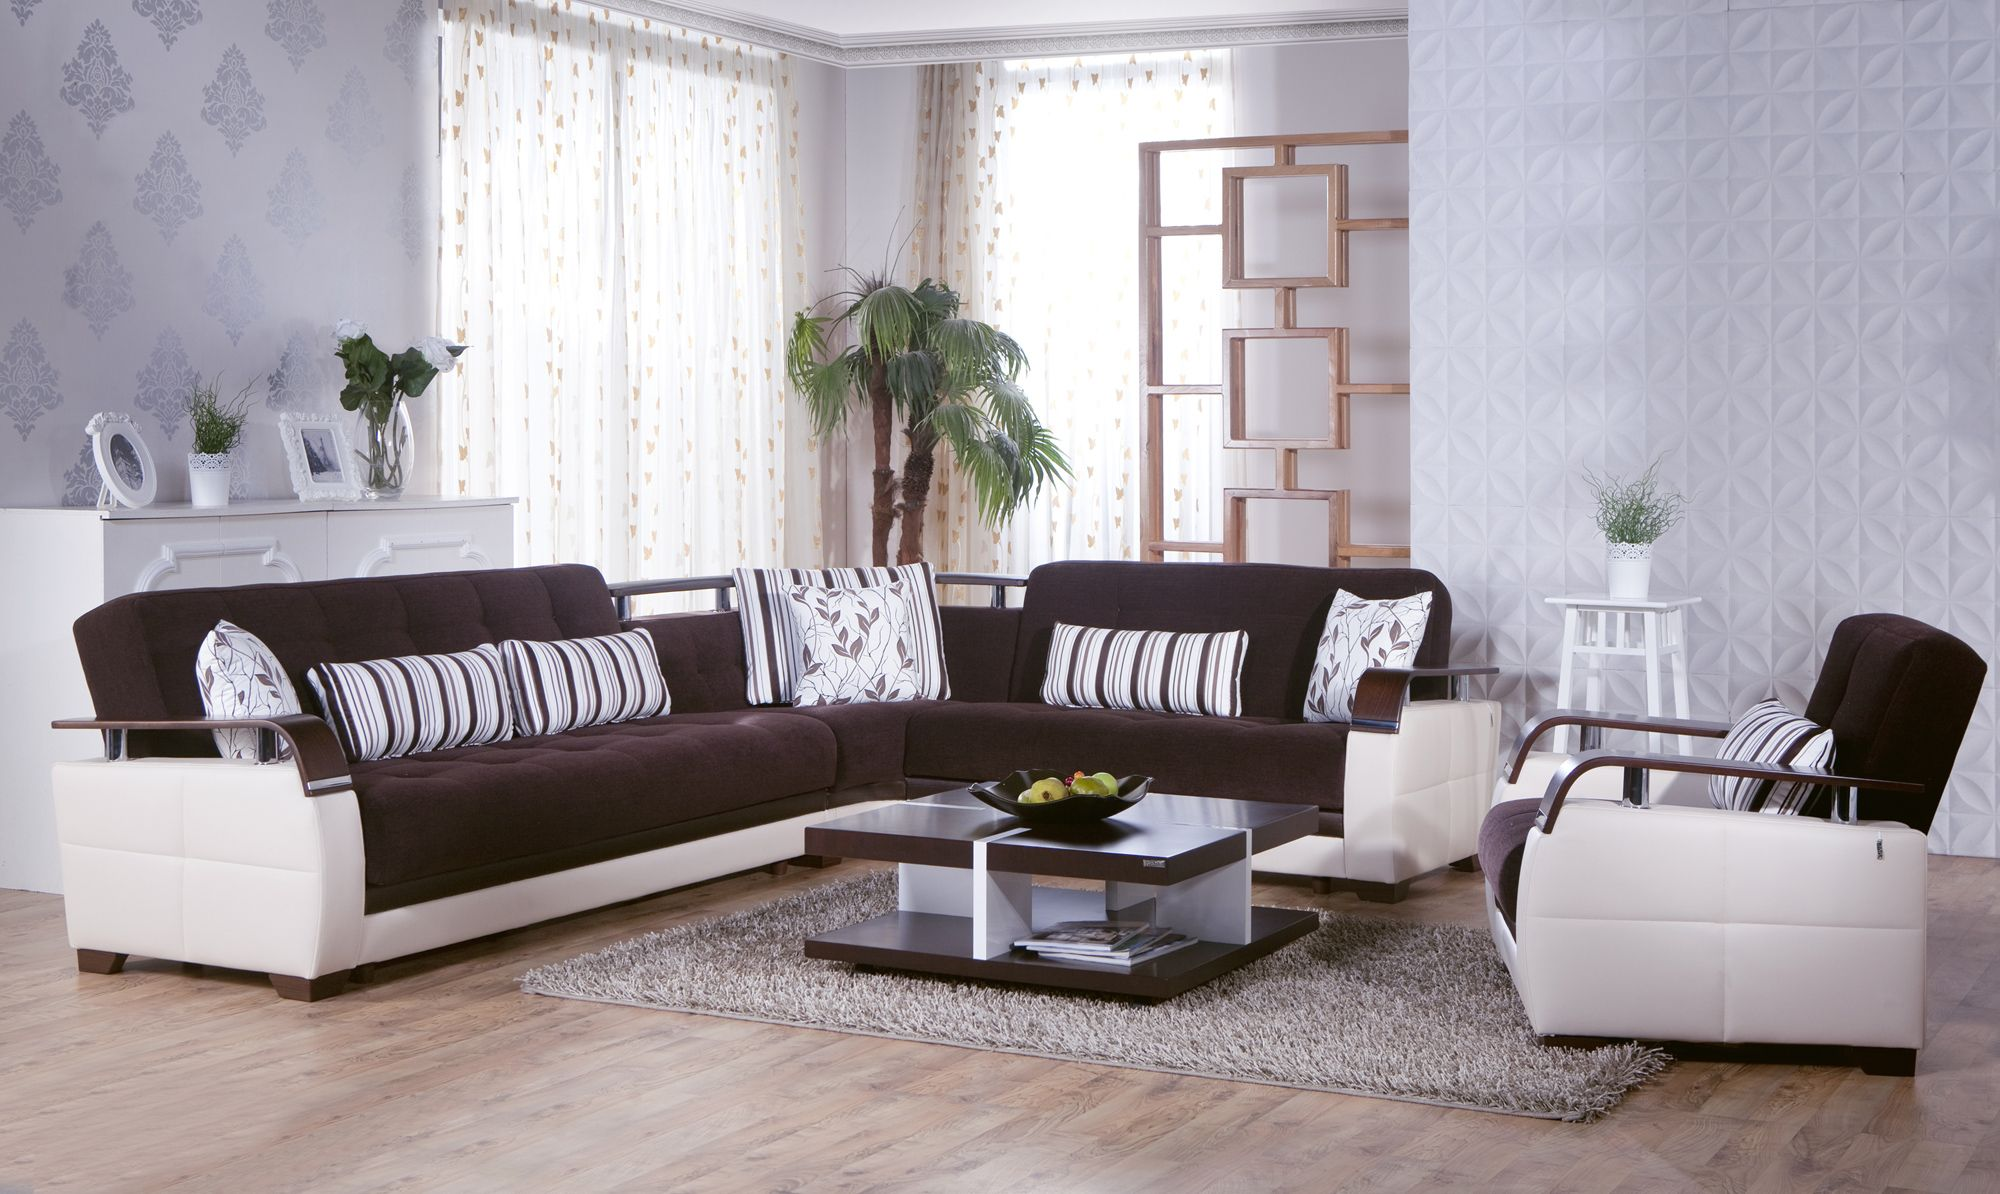 Natural Colins Brown Sectional Sofa by Sunset